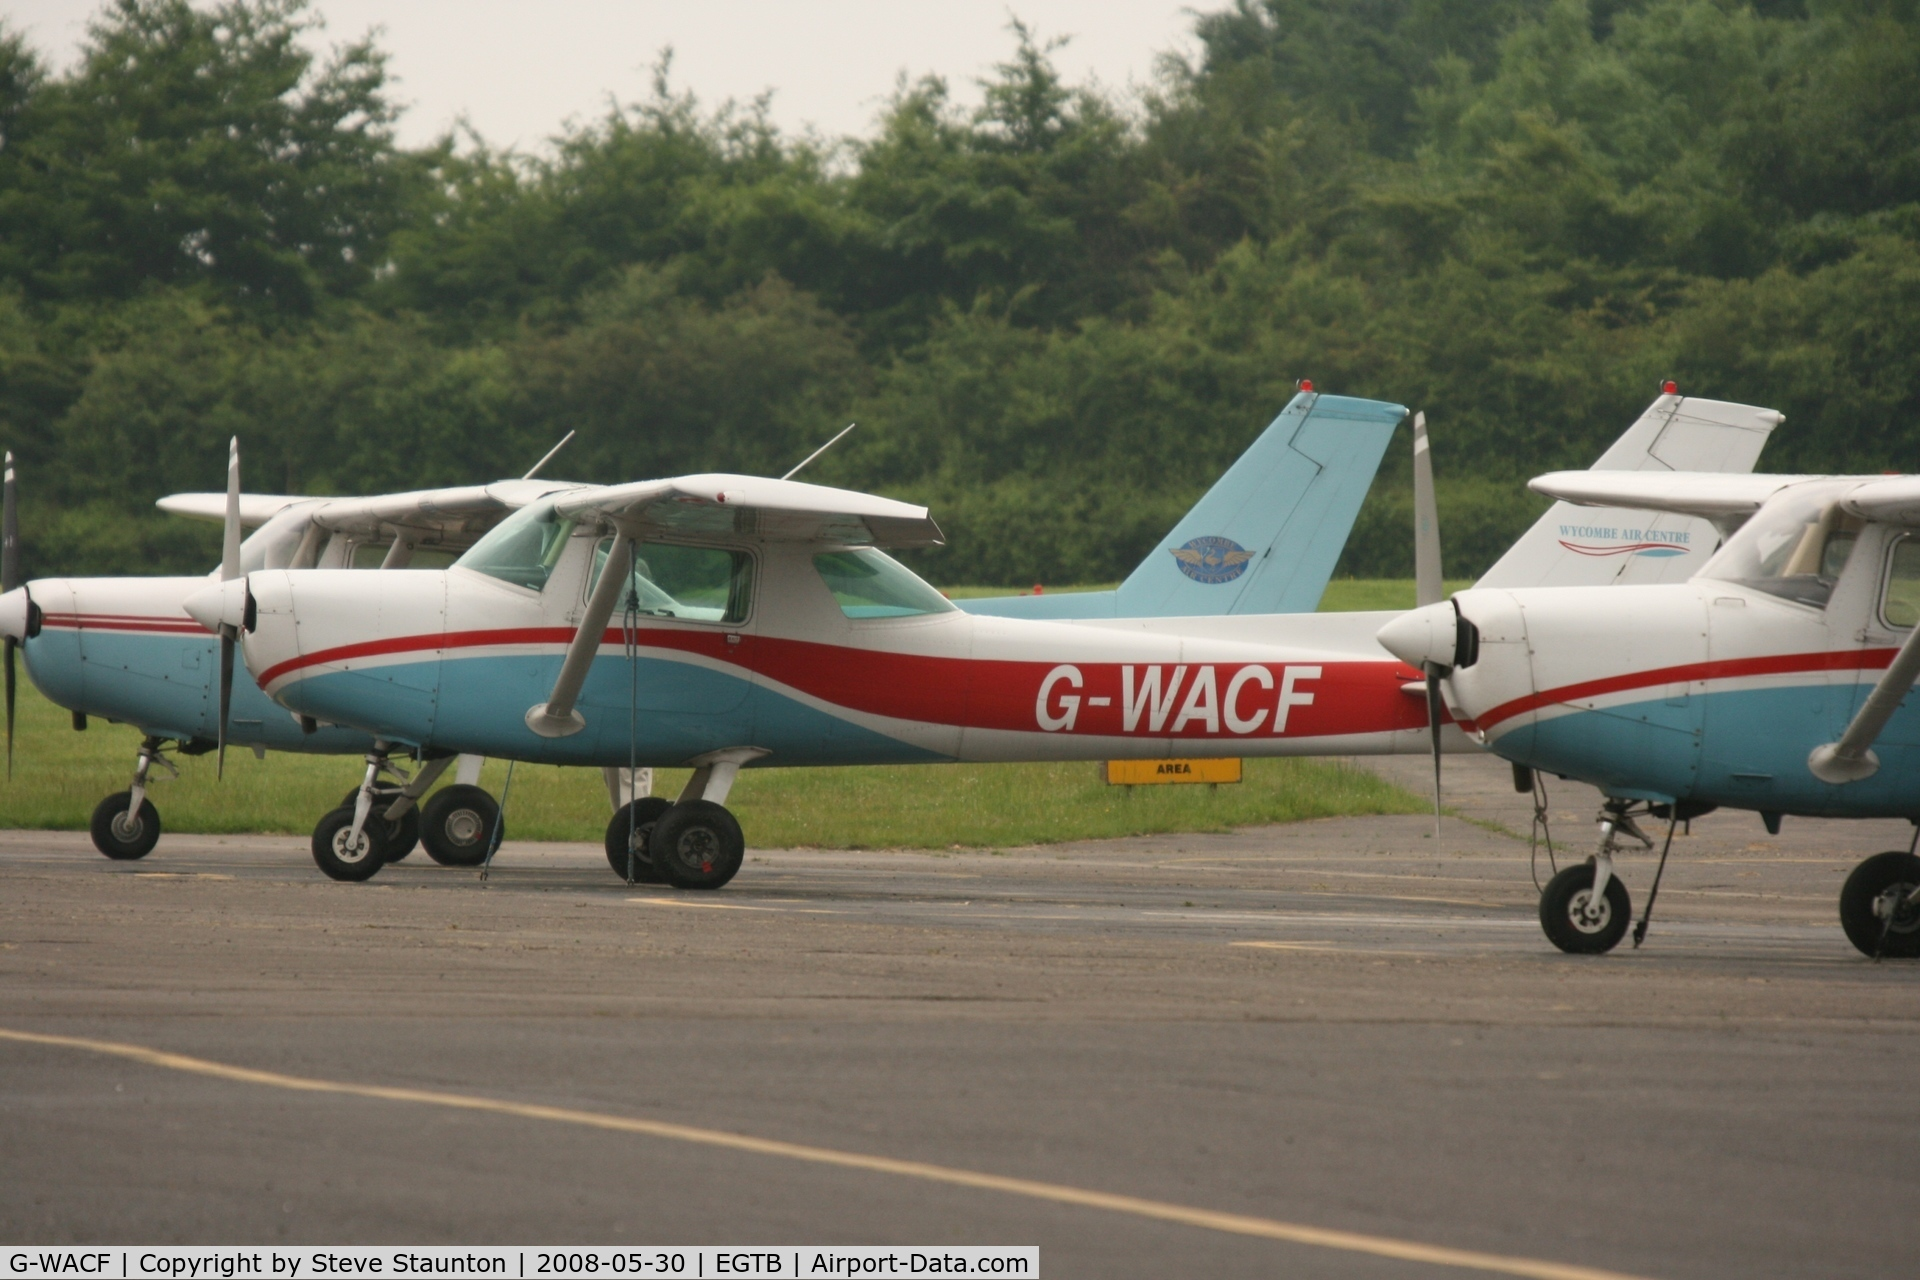 G-WACF, 1980 Cessna 152 C/N 152-84852, Taken at Wycombe Air Park using my new Sigma 50 to 500 APO DG HSM lens (The Beast)